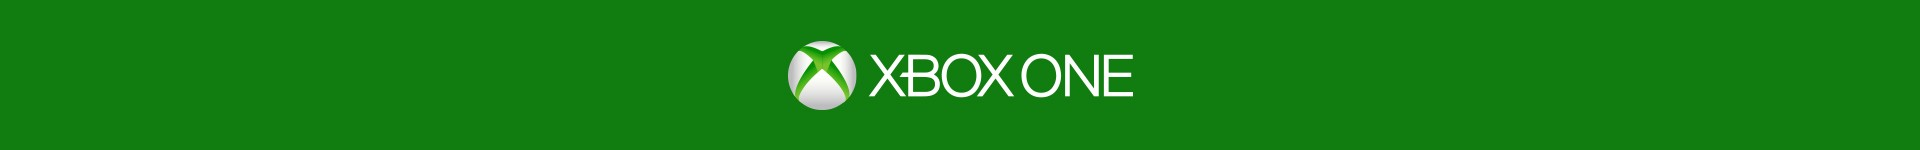 Køb Downloads til Xbox One hos Coolshop